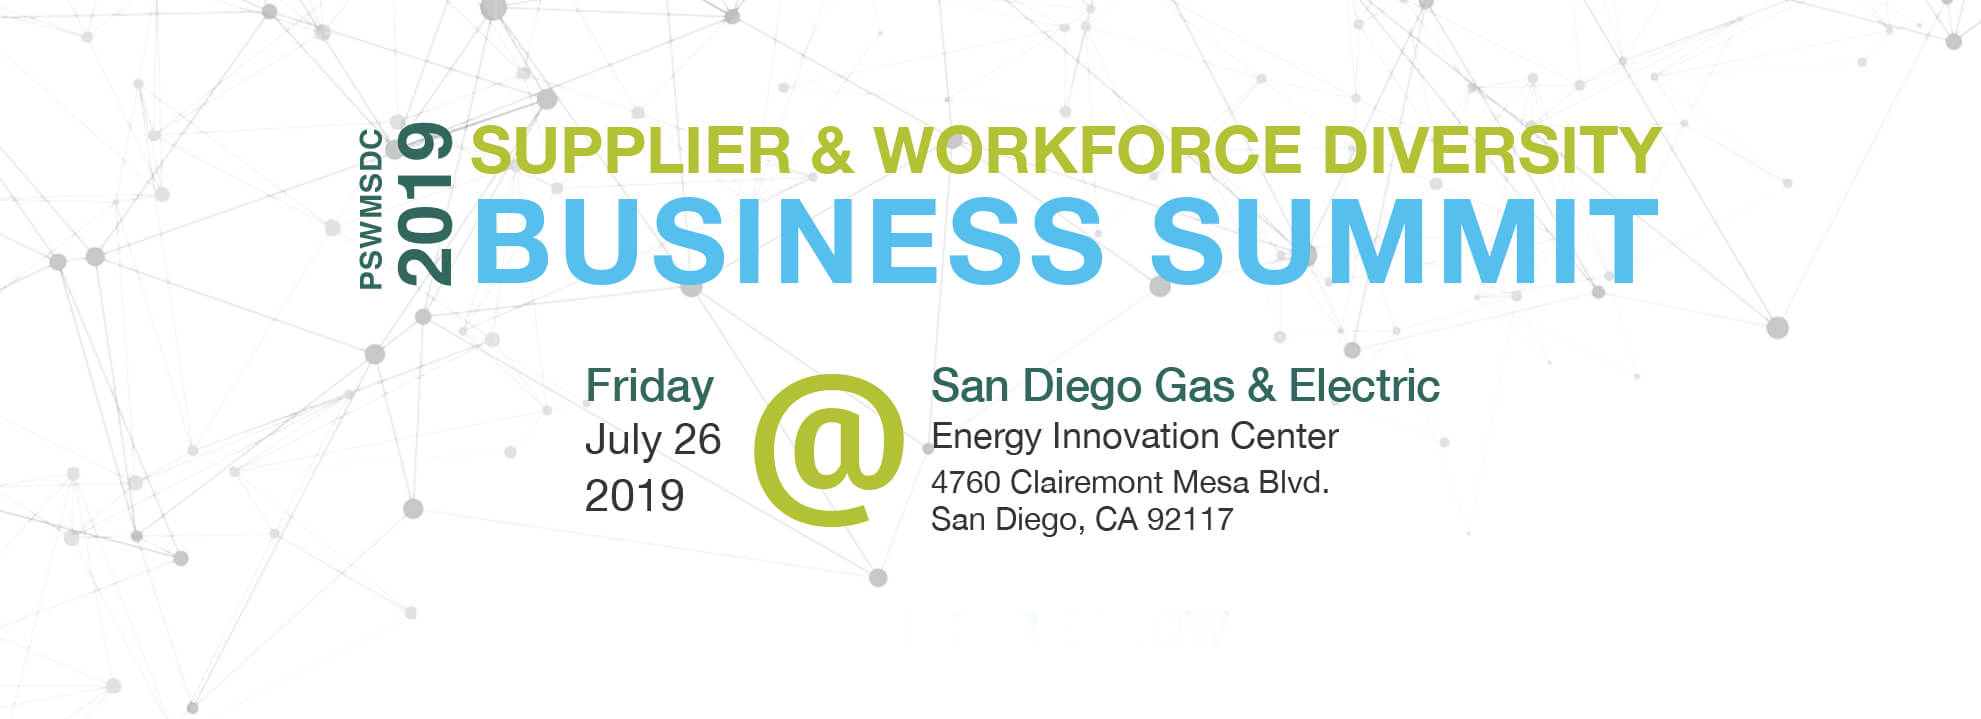 2019 Supplier & Workforce Diversity BUsiness Summit